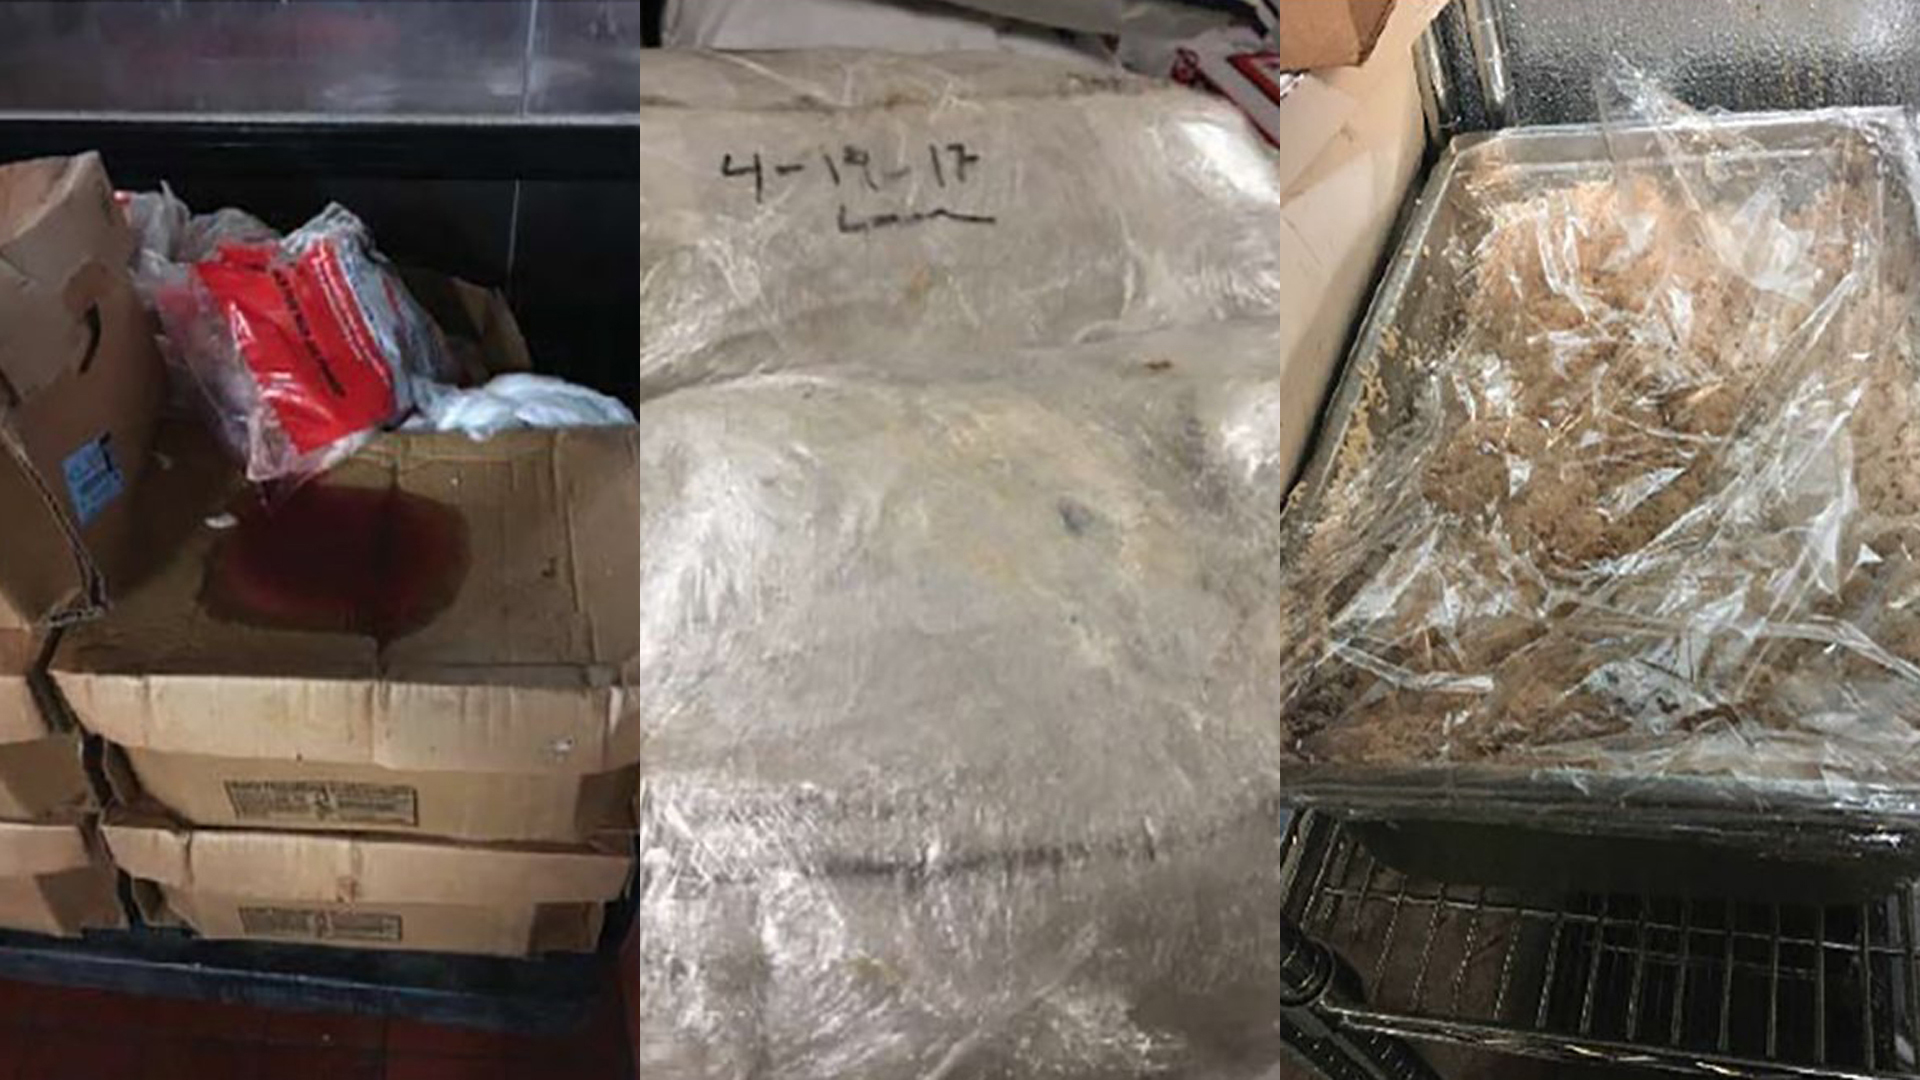 Open packaged raw meat and food items leaking blood, not relabeled and dated, observed by OIG at the Essex facility on July 24, 2018 (left); food not properly labeled or stared at LaSalle facility on August 7, 2018 (center); and unlabeled food with no description or date at Aurora facility on November 6, 2018 (right). (Credit: Office of Inspector General/DHS)